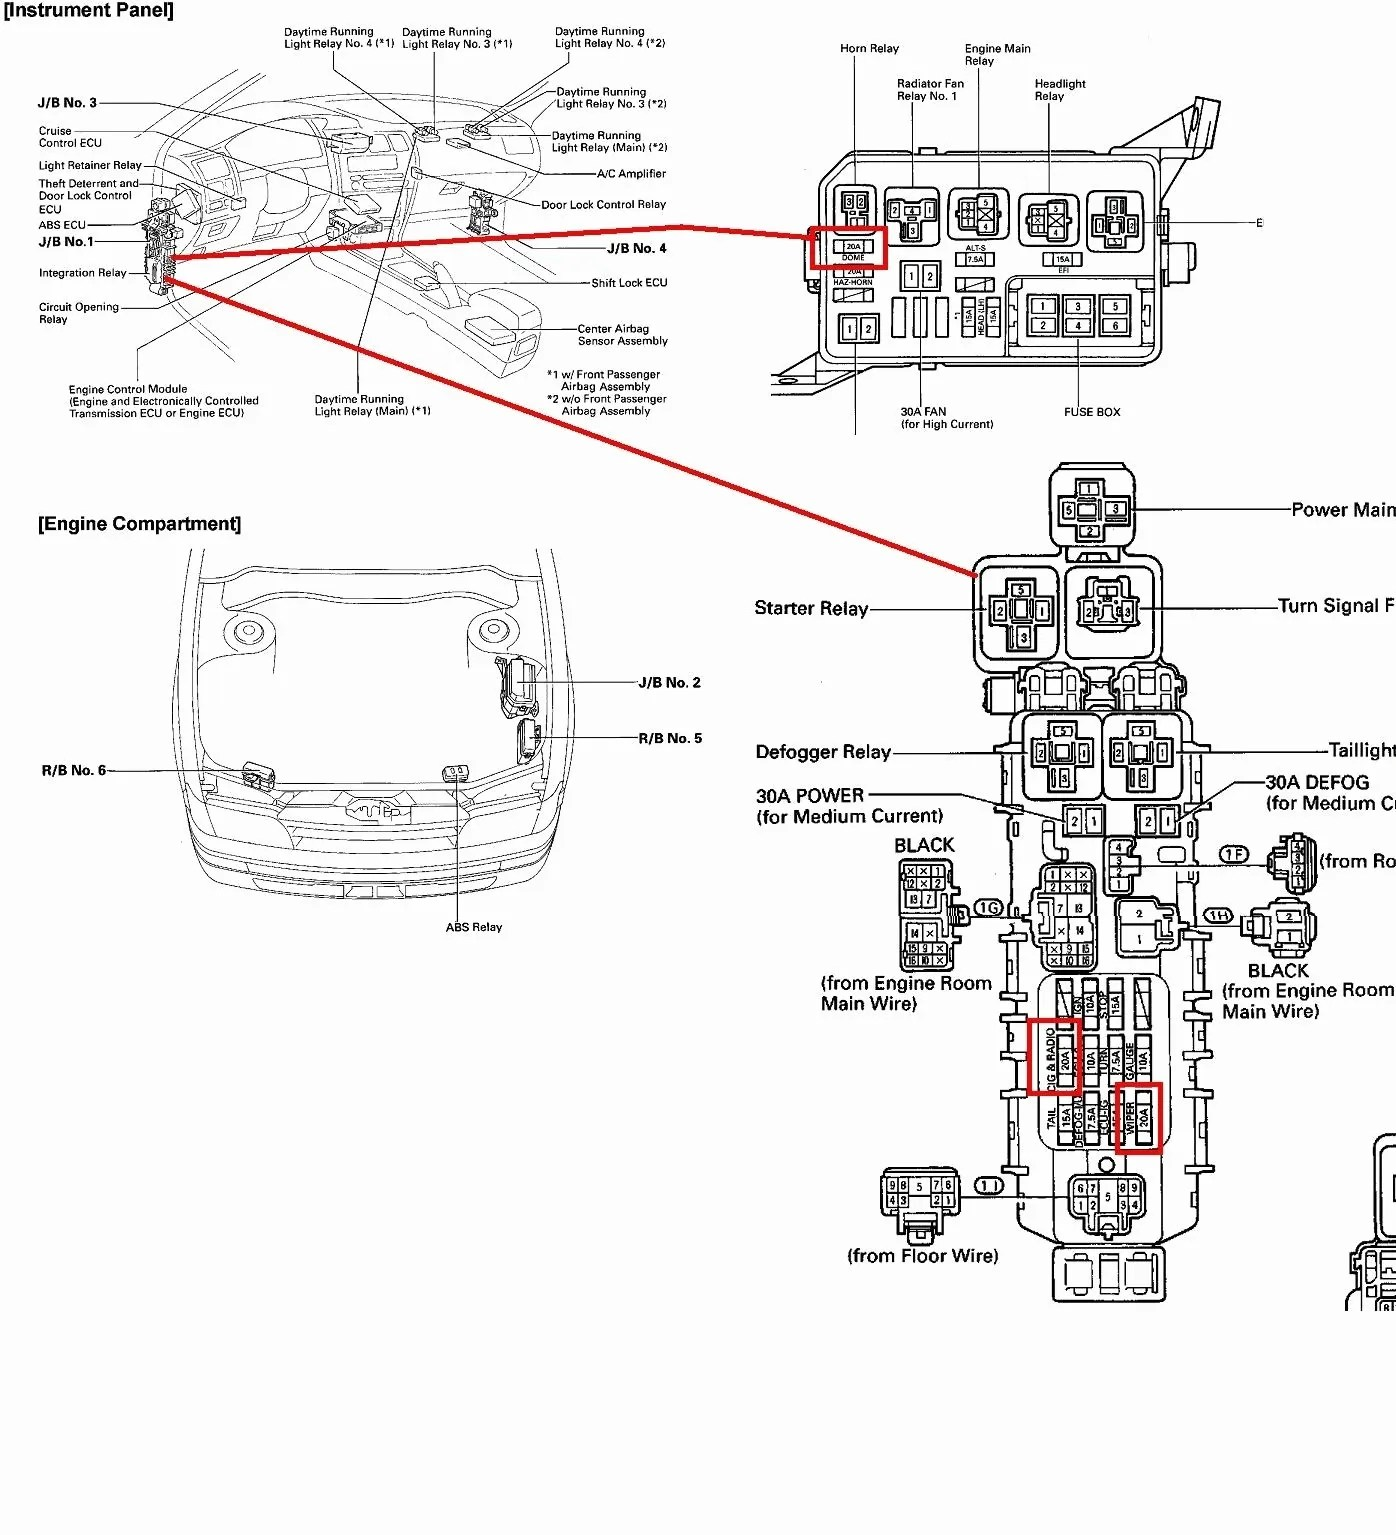 hight resolution of 2004 toyota corolla wiring diagram airbags wiring diagram review 2004 toyota corolla wiring diagrams blog wiring